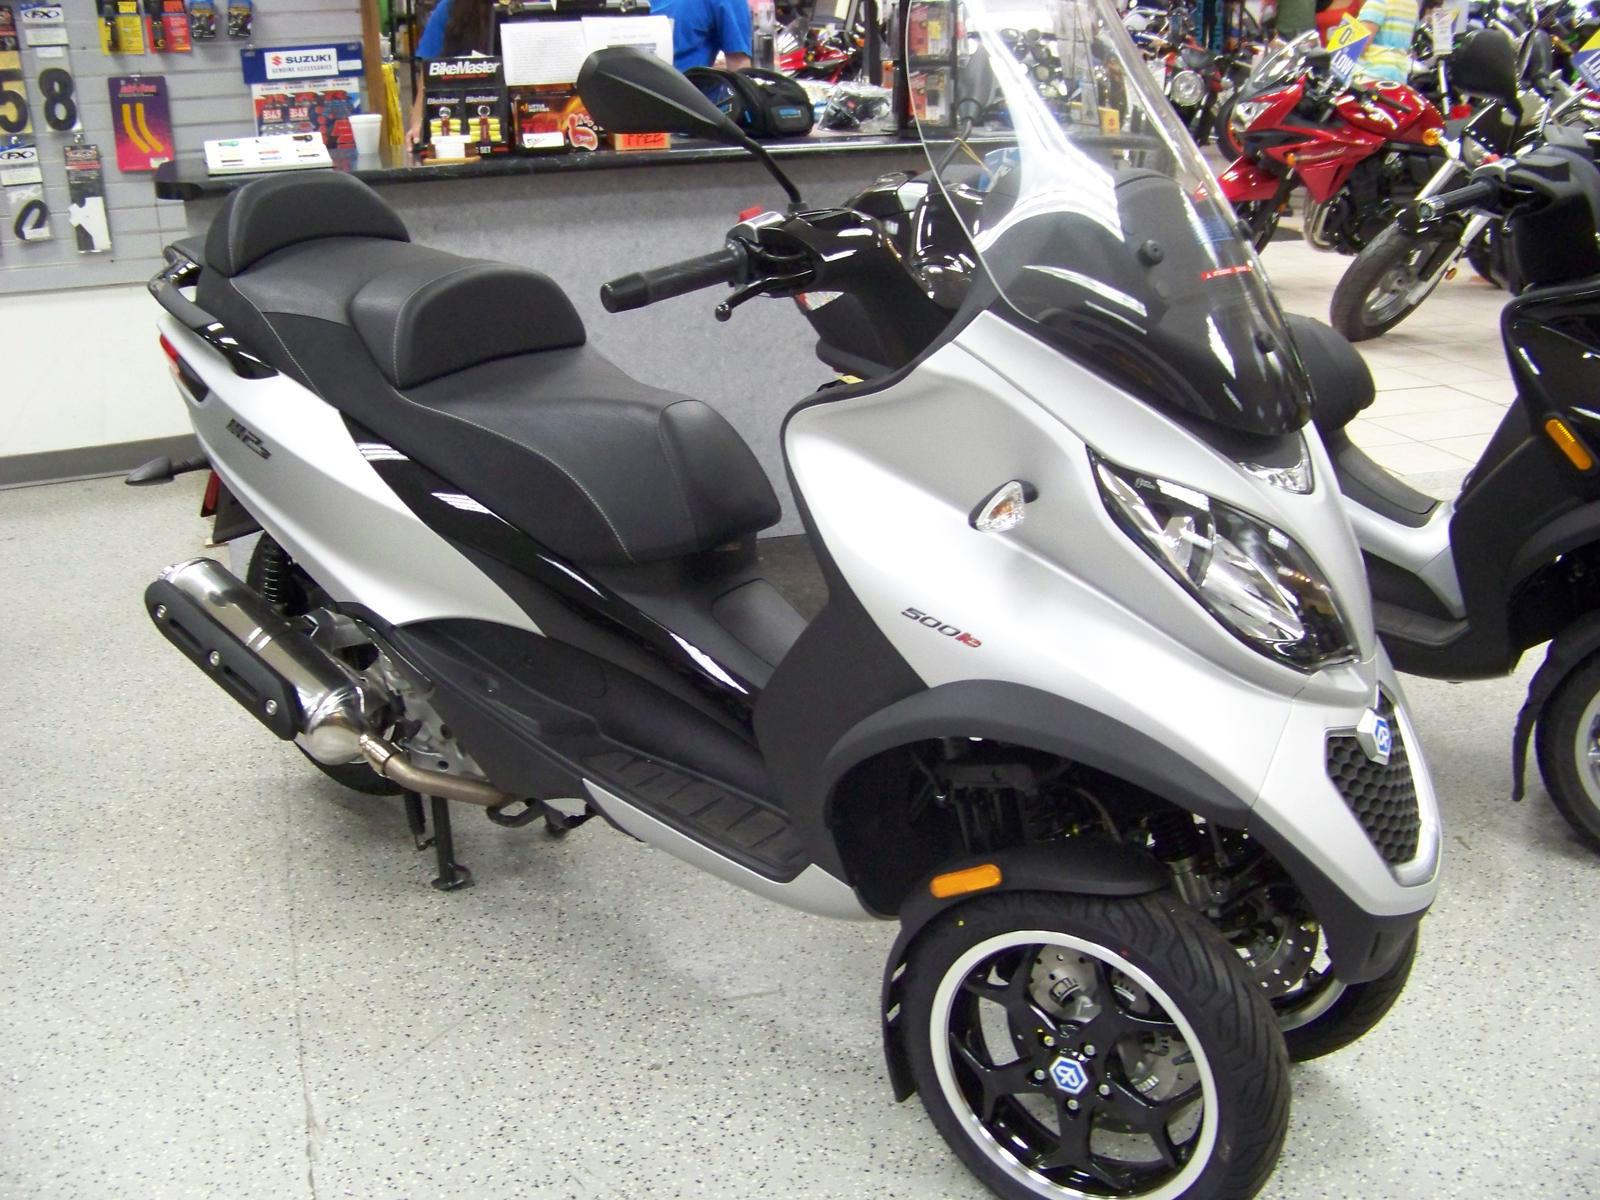 2016 piaggio mp3 500 abs for sale in lakeville, mn | leo's south 1